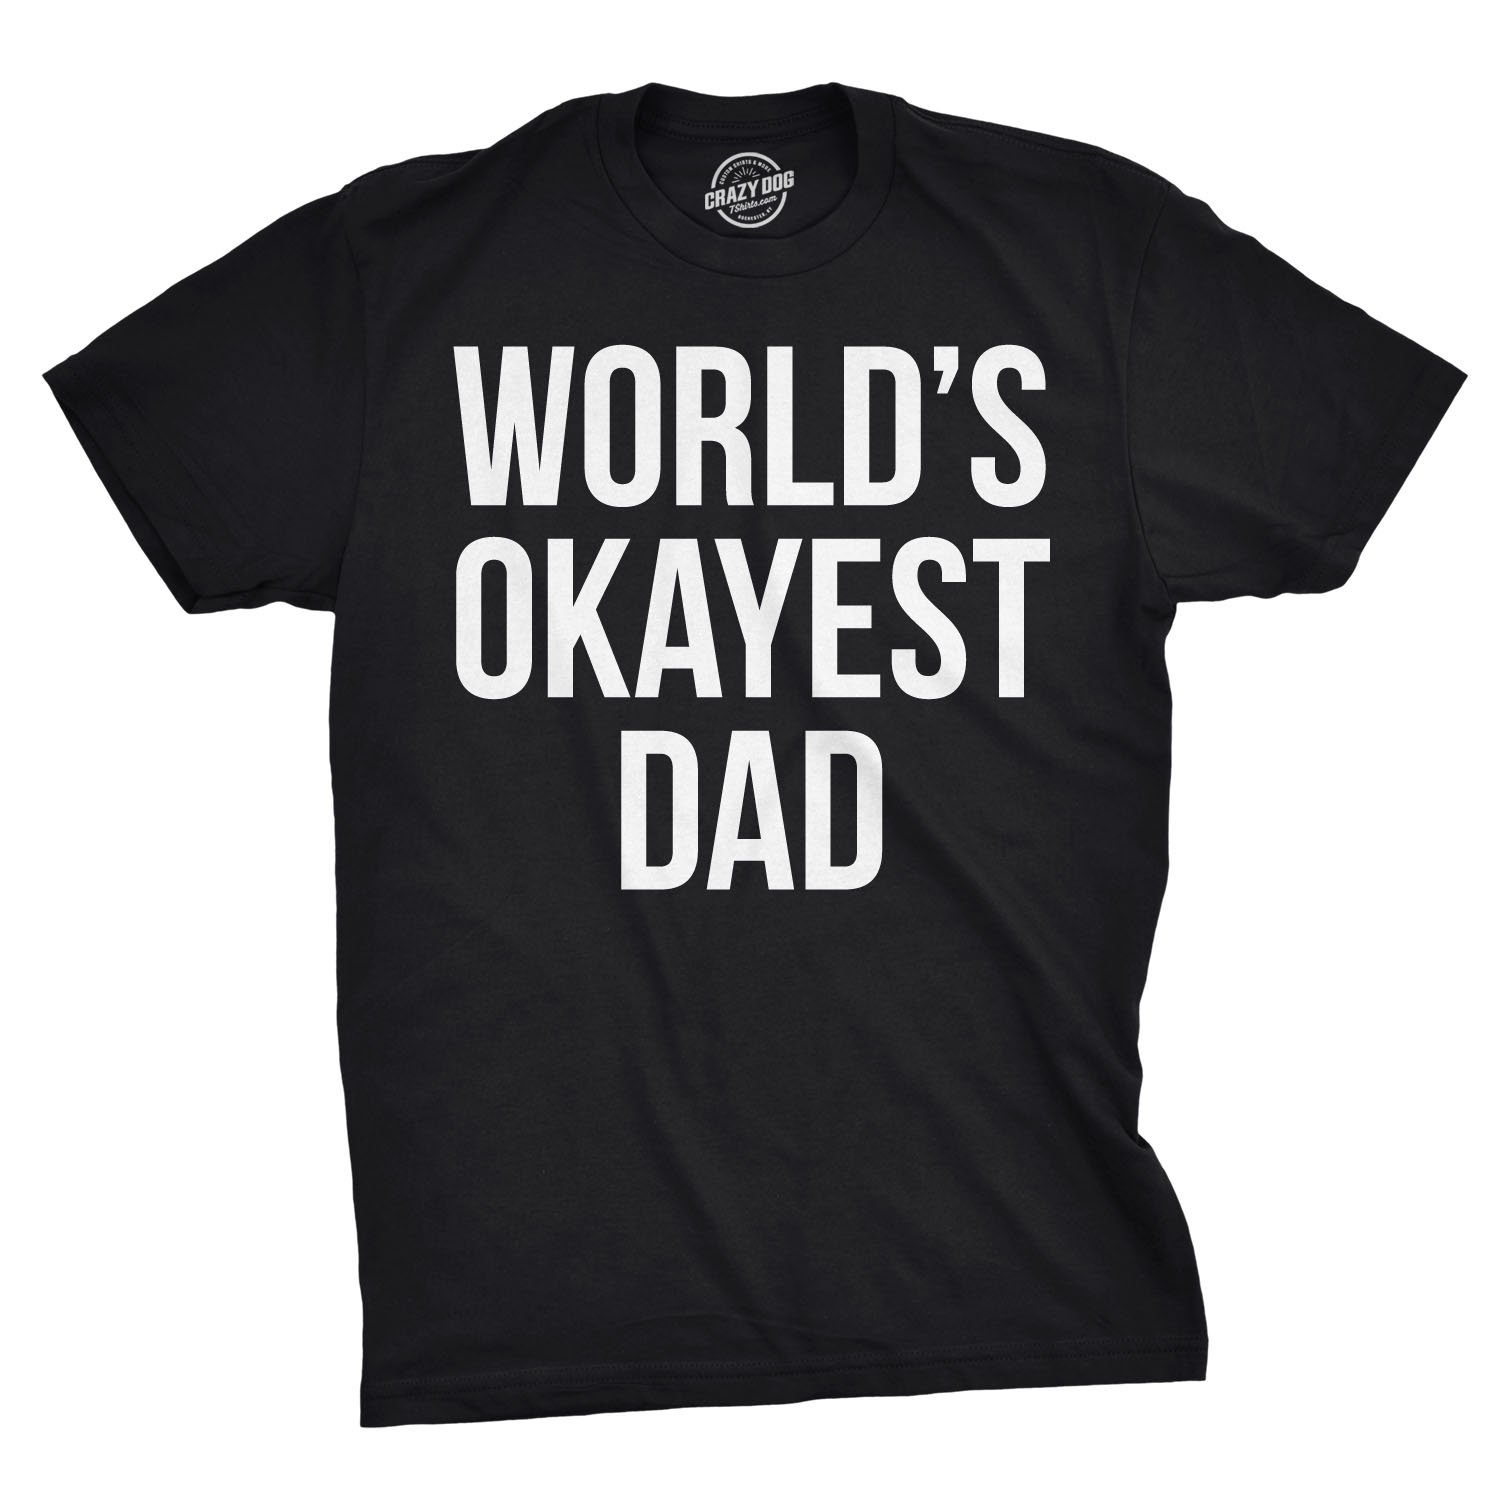 a87cb0530 Amazon.com: Mens Okayest Dad T Shirt Funny Sarcastic Novelty Parenting Tee  for Fathers: Clothing